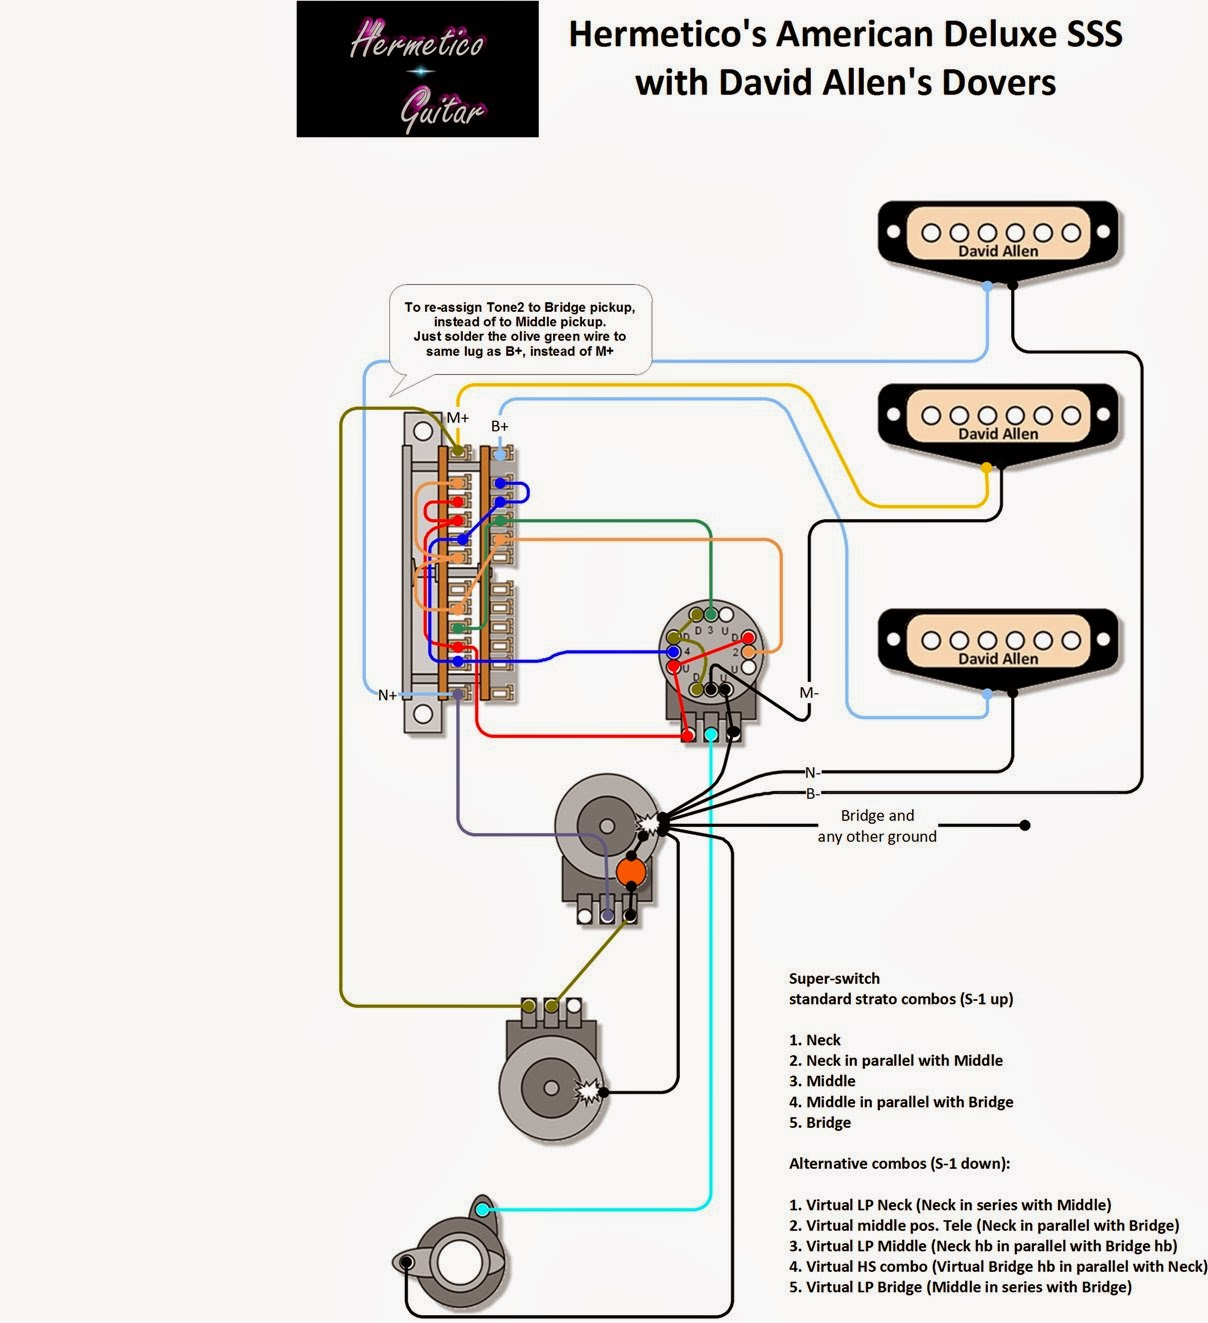 medium resolution of hermetico guitar fender american deluxe sss 2010 model fender stratocaster wiring modifications mexican strat wiring diagram